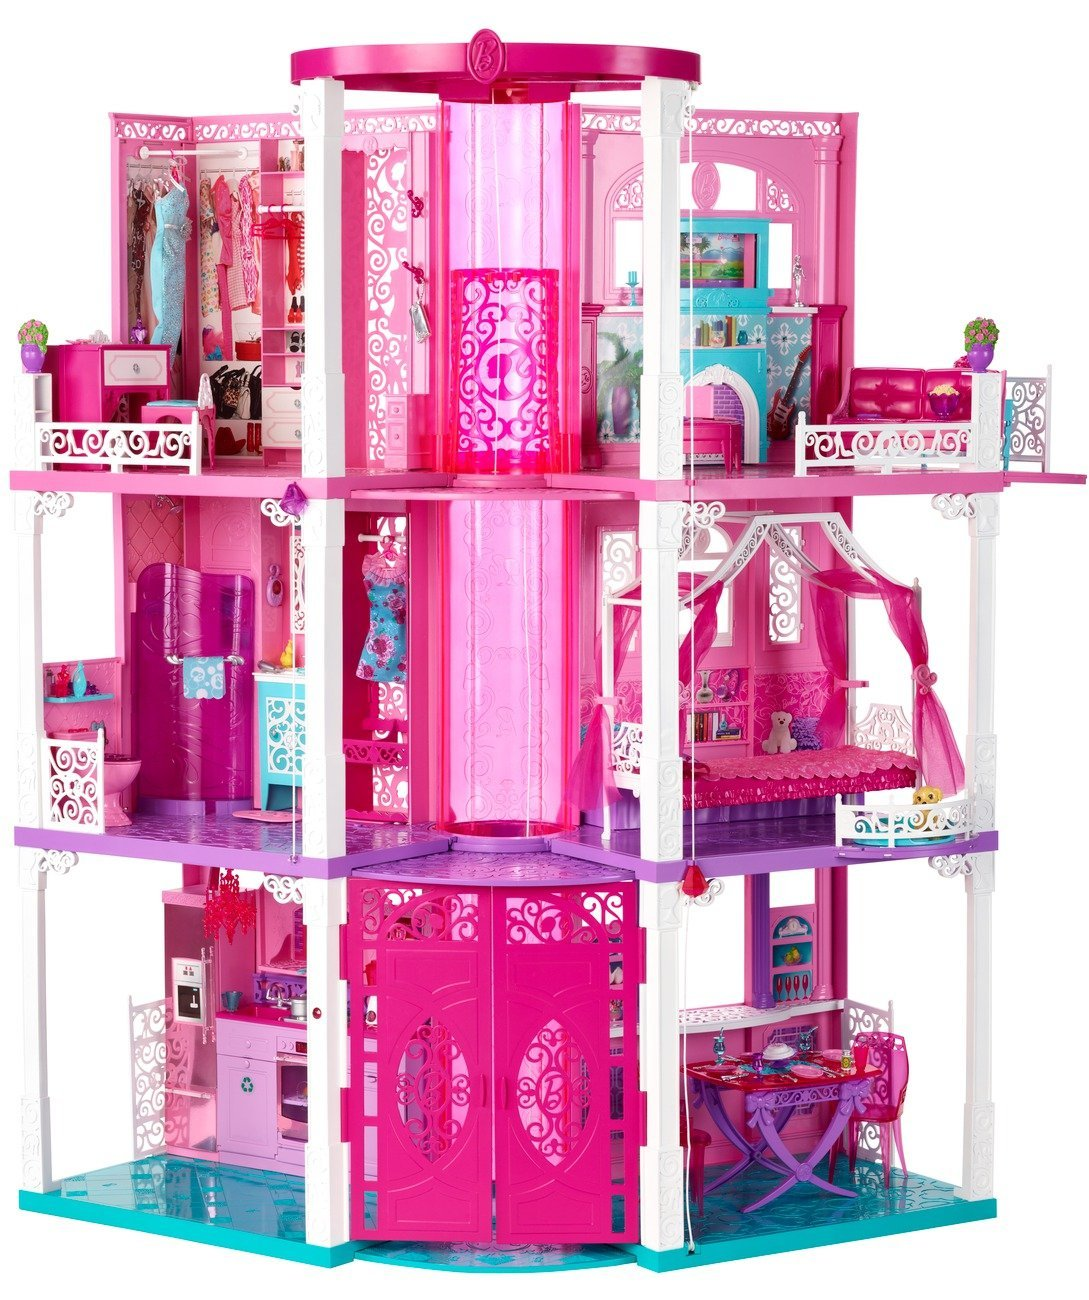 3-Story Barbie Dream House only $120 from Amazon! (reg $190)